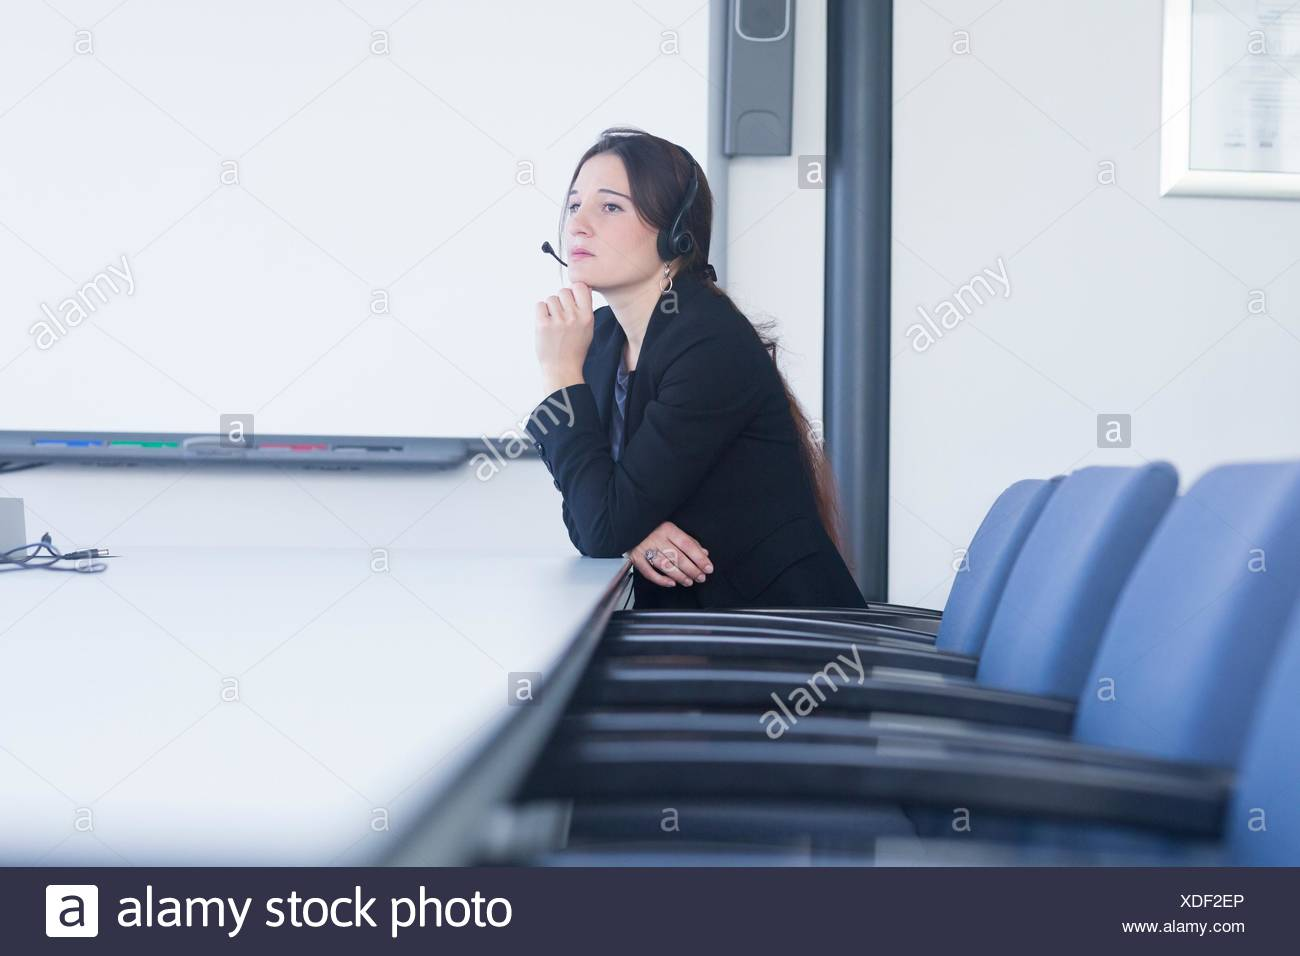 Telephonist contemplating in meeting room - Stock Image